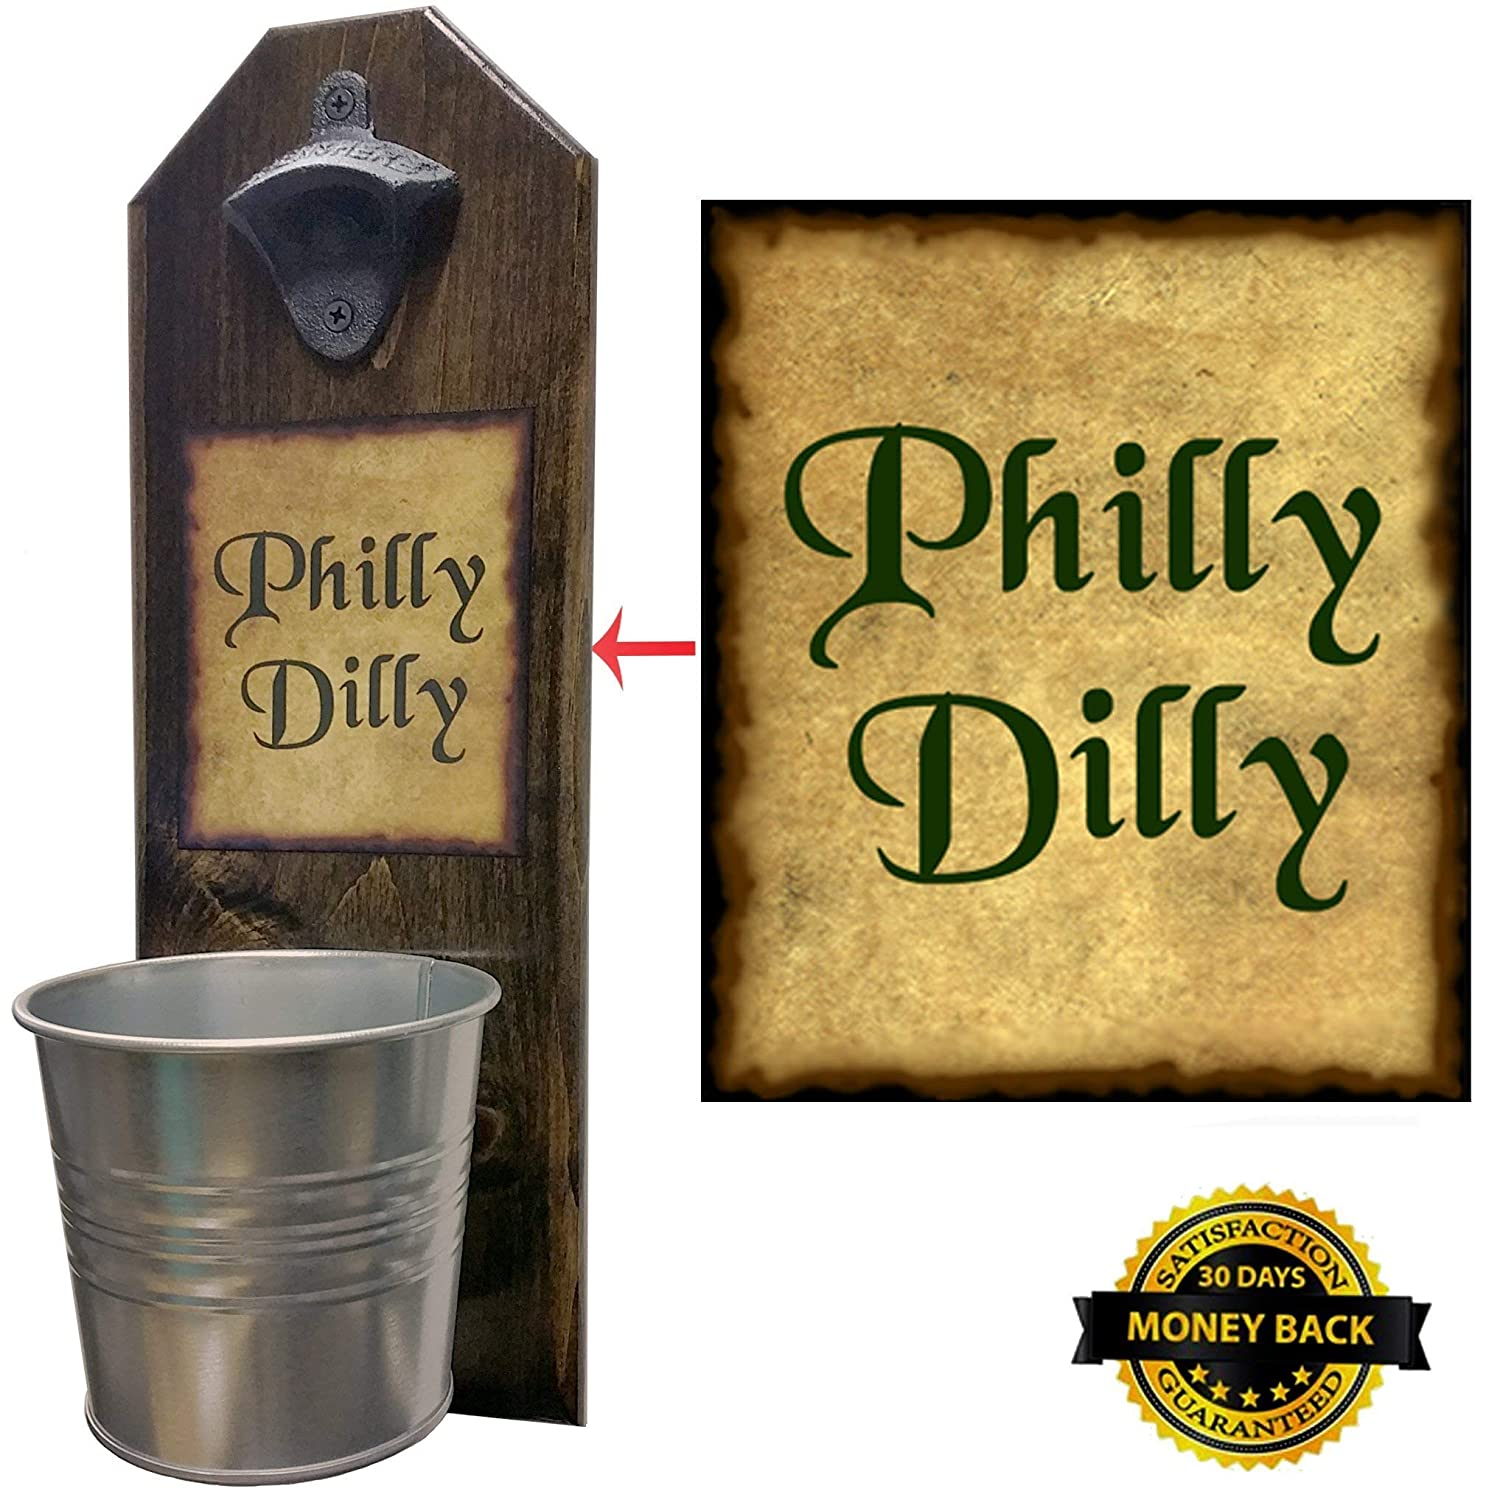 Philly Dilly Beer Bottle Opener and Cap Catcher, Wall Mounted - Handcrafted by a Vet - Solid Pine - Rustic Cast Iron Opener & Galvanized Bucket - Just Twist to Empty - Great Championship Gift!